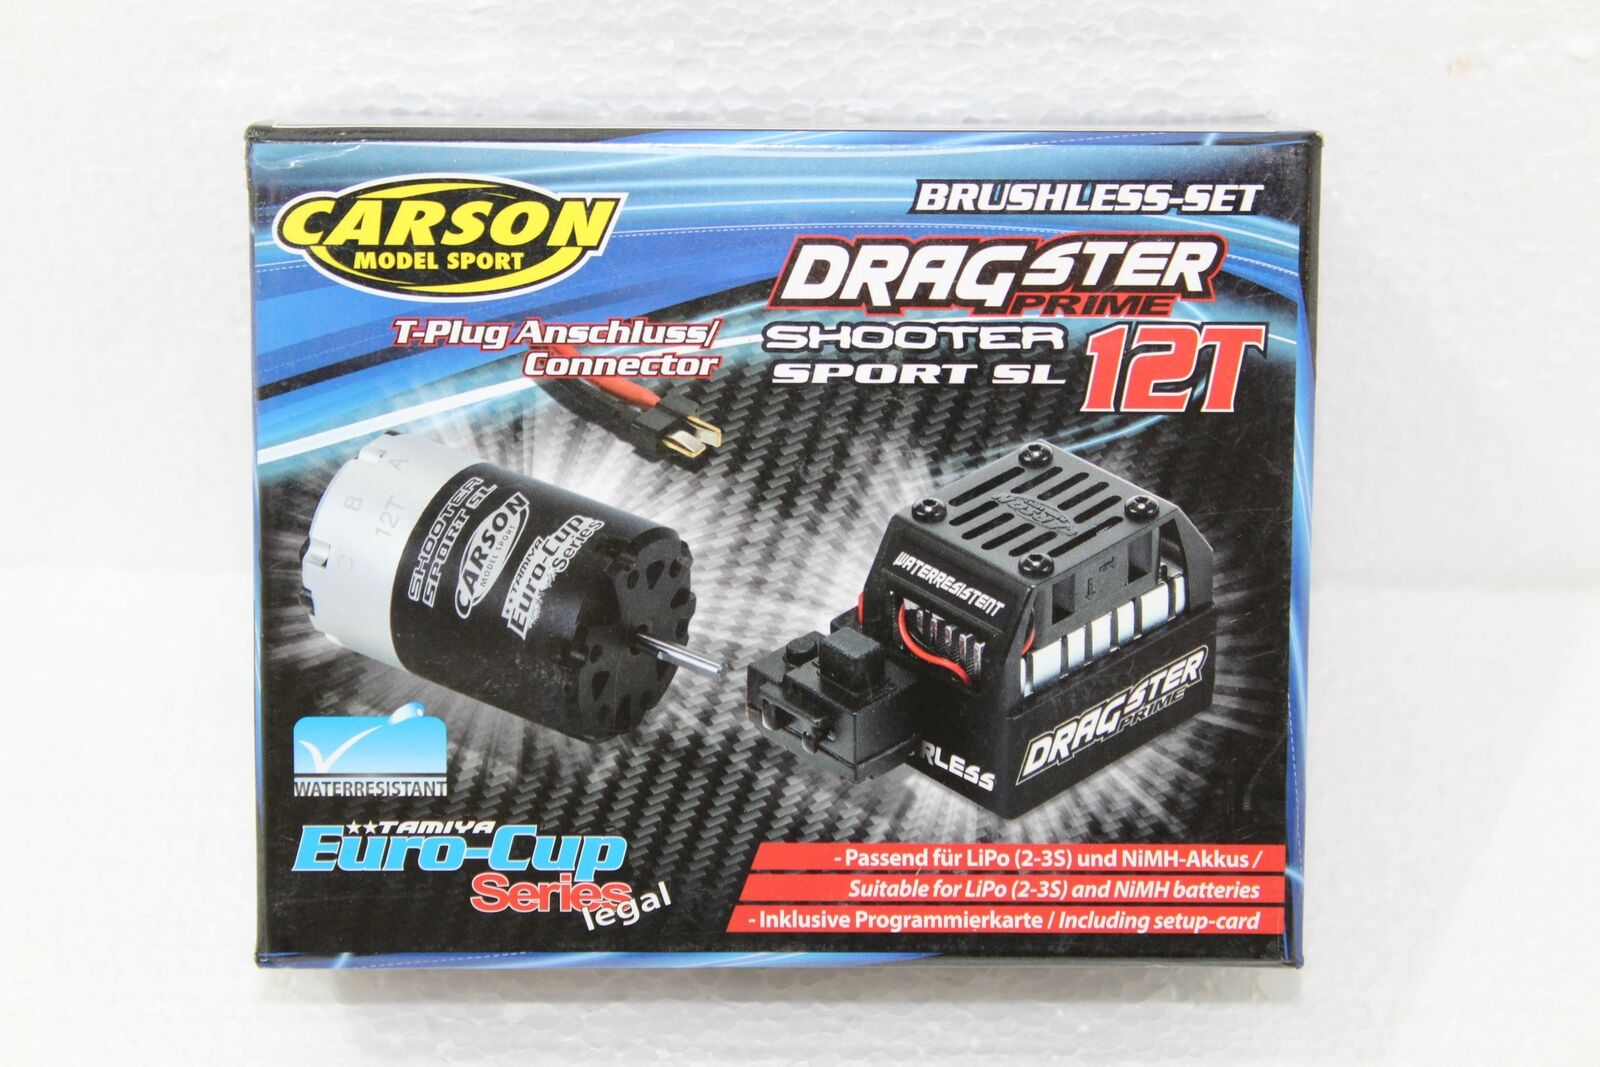 Carson 500906163 brushless combo 12t dragster Prime water resistant